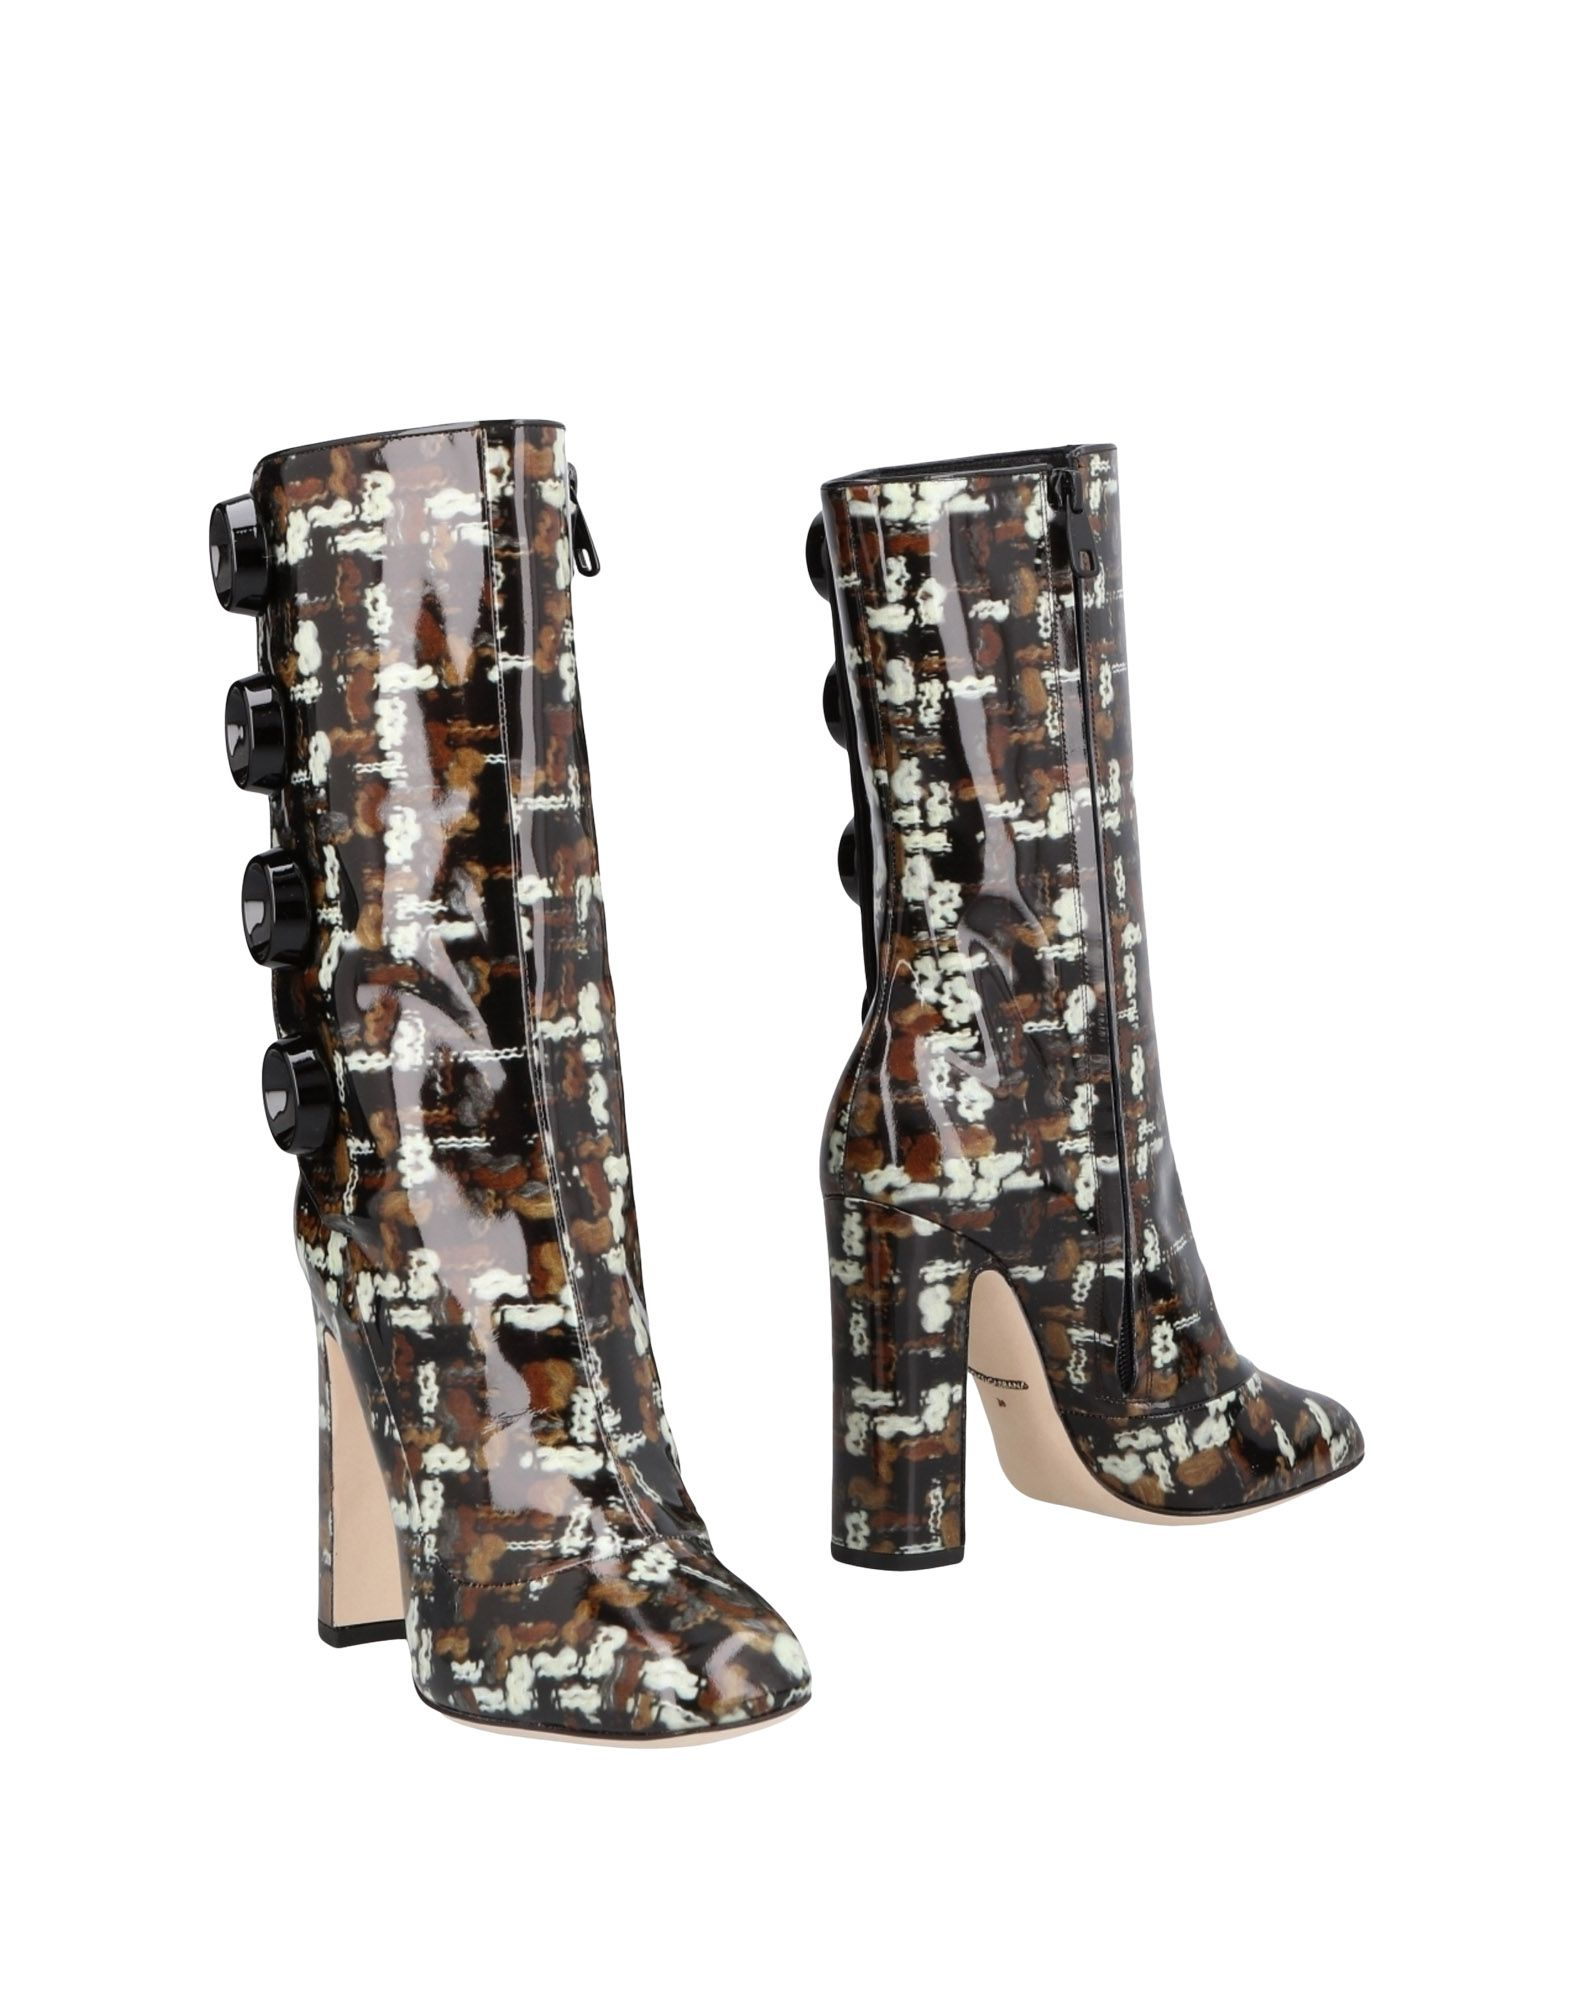 Dolce - & Gabbana Ankle Boot - Dolce Women Dolce & Gabbana Ankle Boots online on  Australia - 11488714WG a8d007